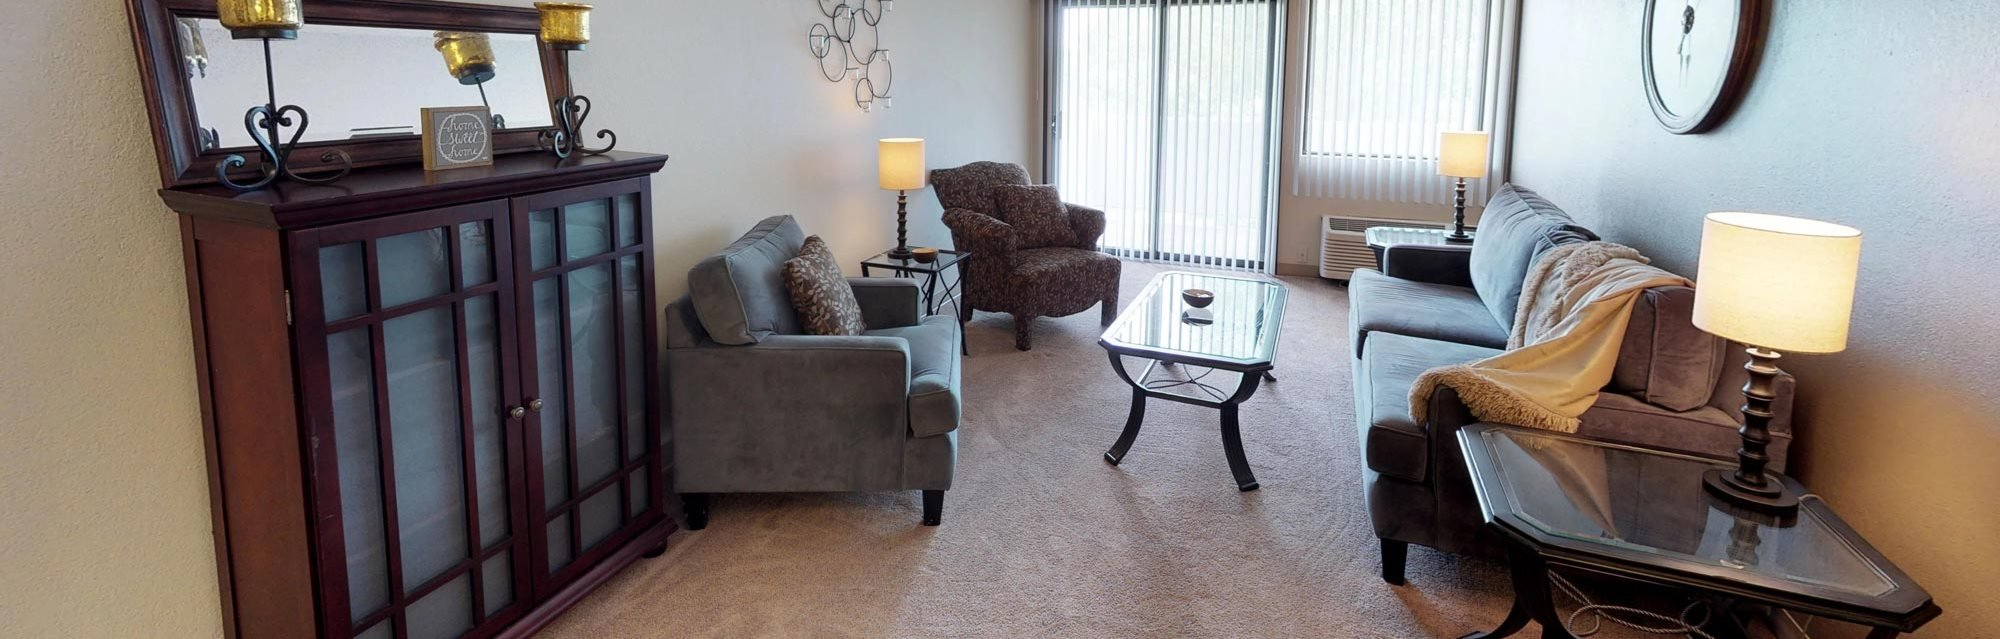 Furnished apartment at Ridge Oaks Apartments in North Sioux City, Iowa